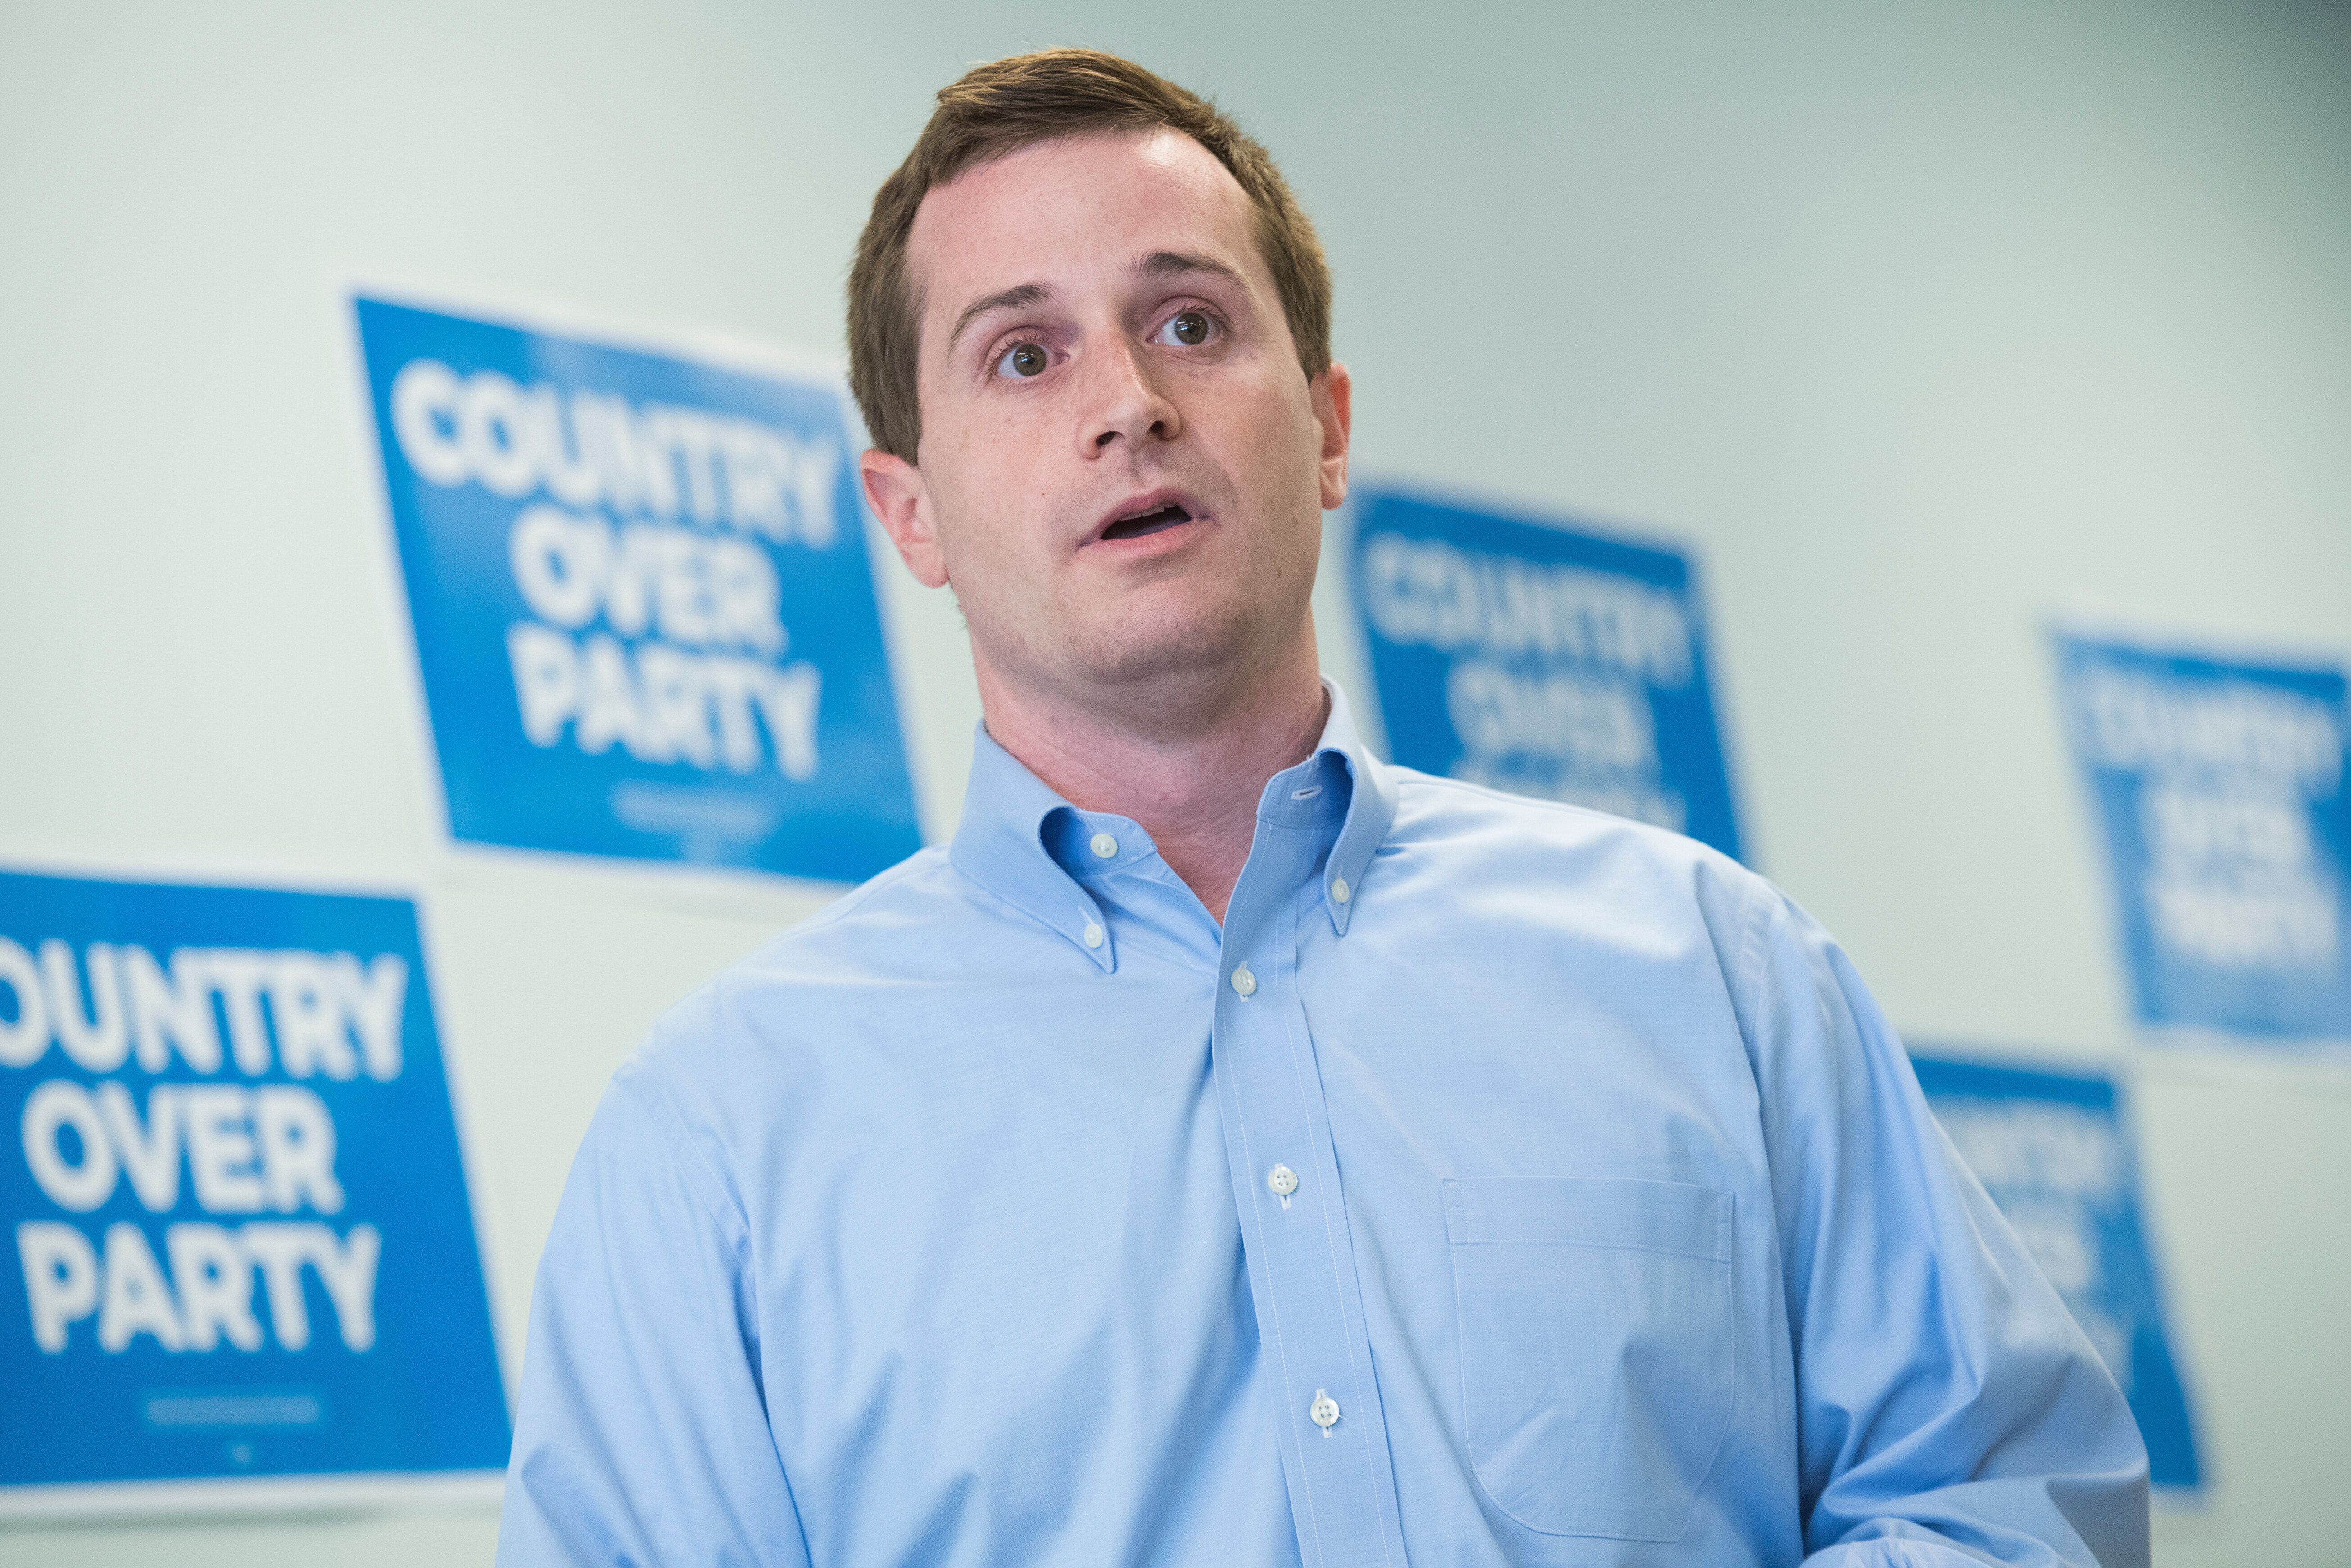 Dan McCready, Democratic candidate for North Carolina's 9th District, talks with voters at his campaign office during his edu